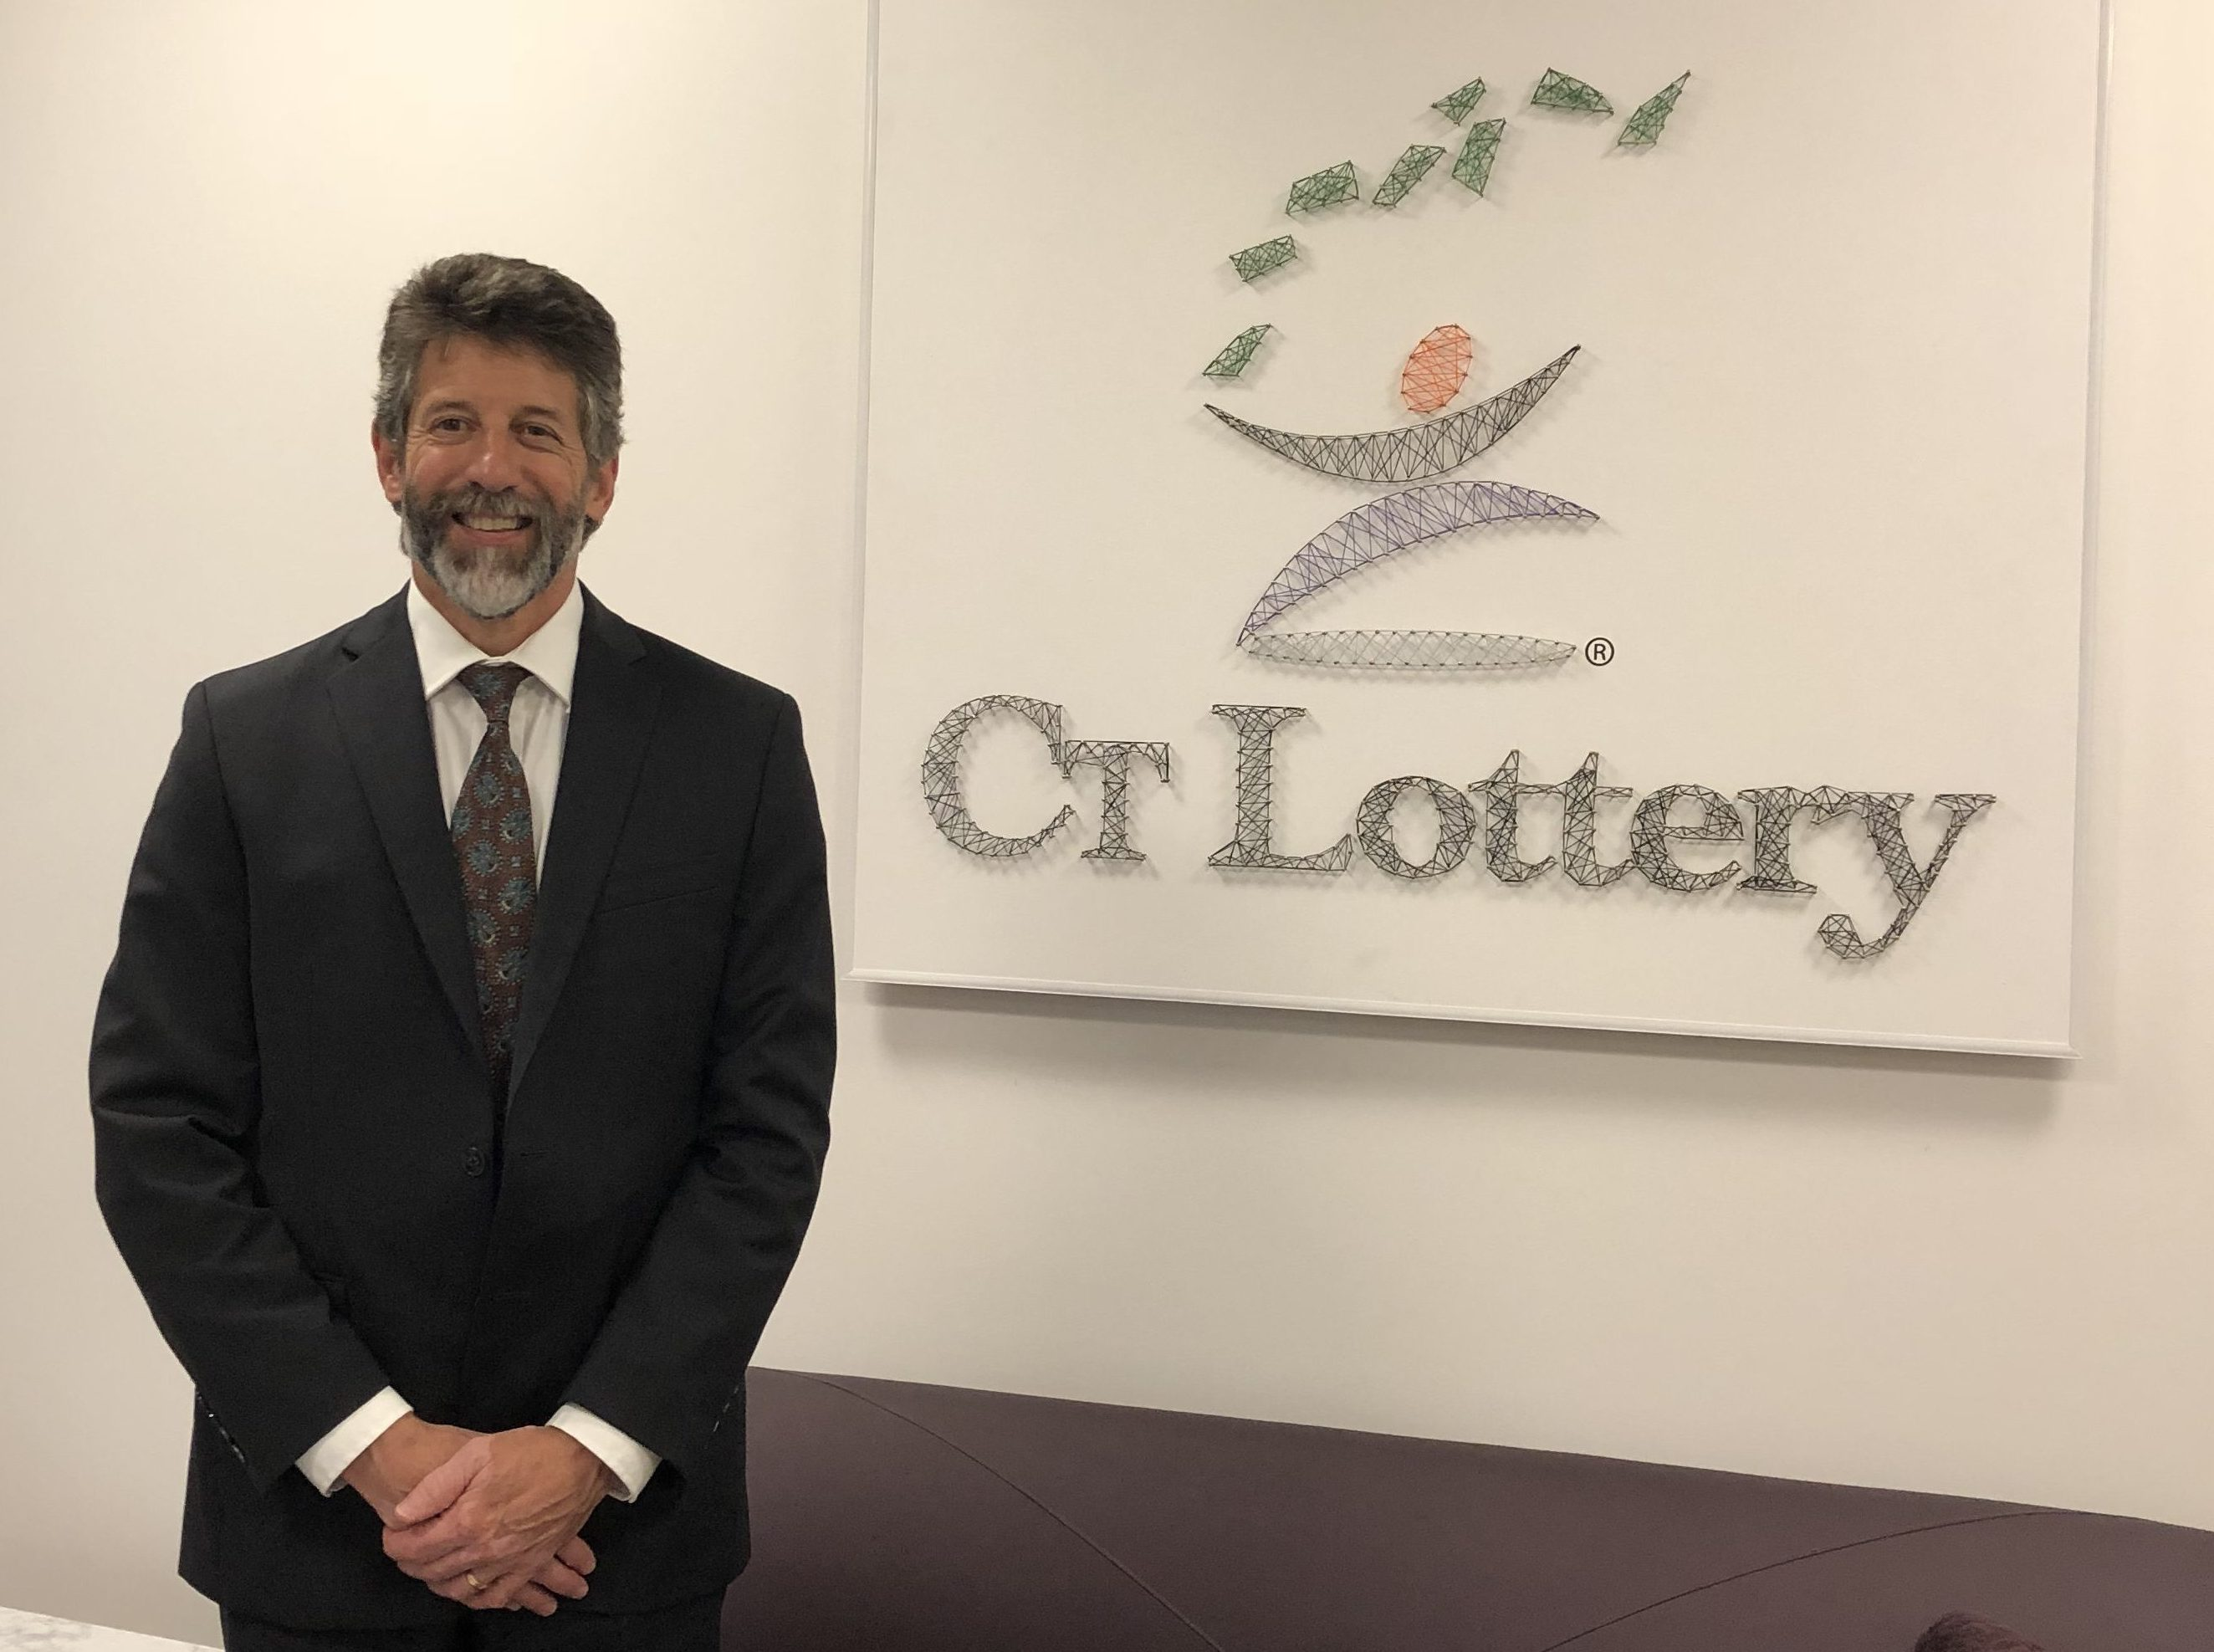 CT Lottery insists it's closed a dark chapter and is ready for growth, online sales and sports betting